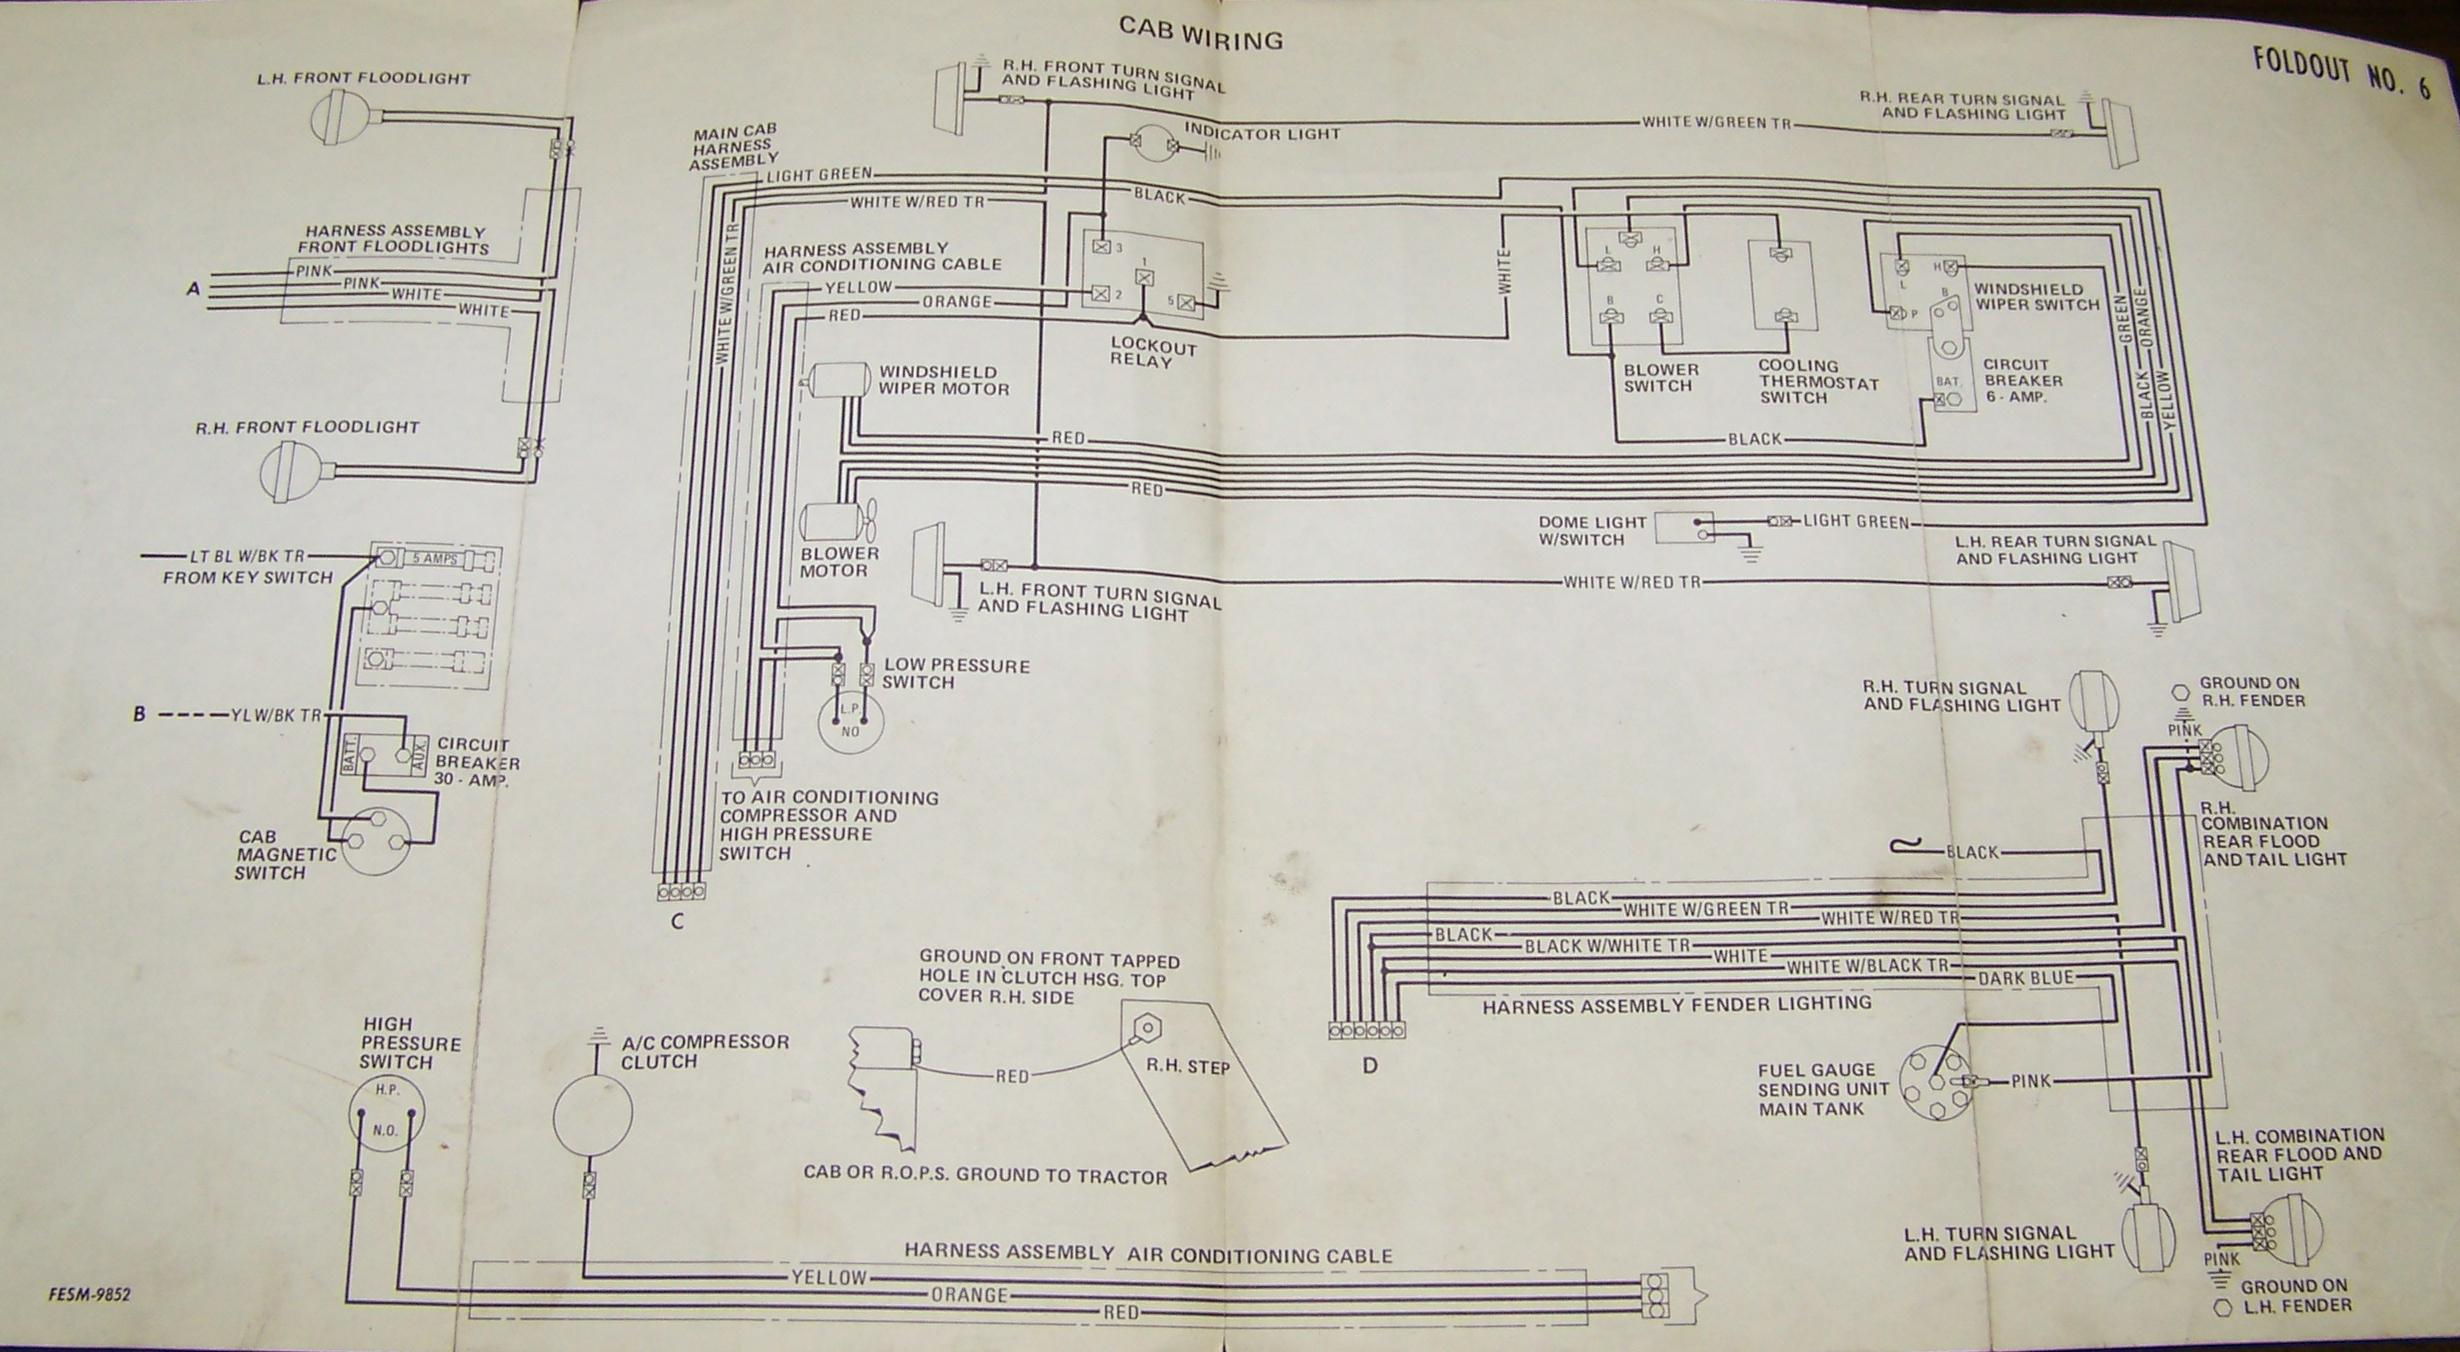 Wiring Diagram For Tractor Lights Libraries International Wire 1954 Farmall Super A Wiringcarter U0026 Gruenewald Co Inc Ih